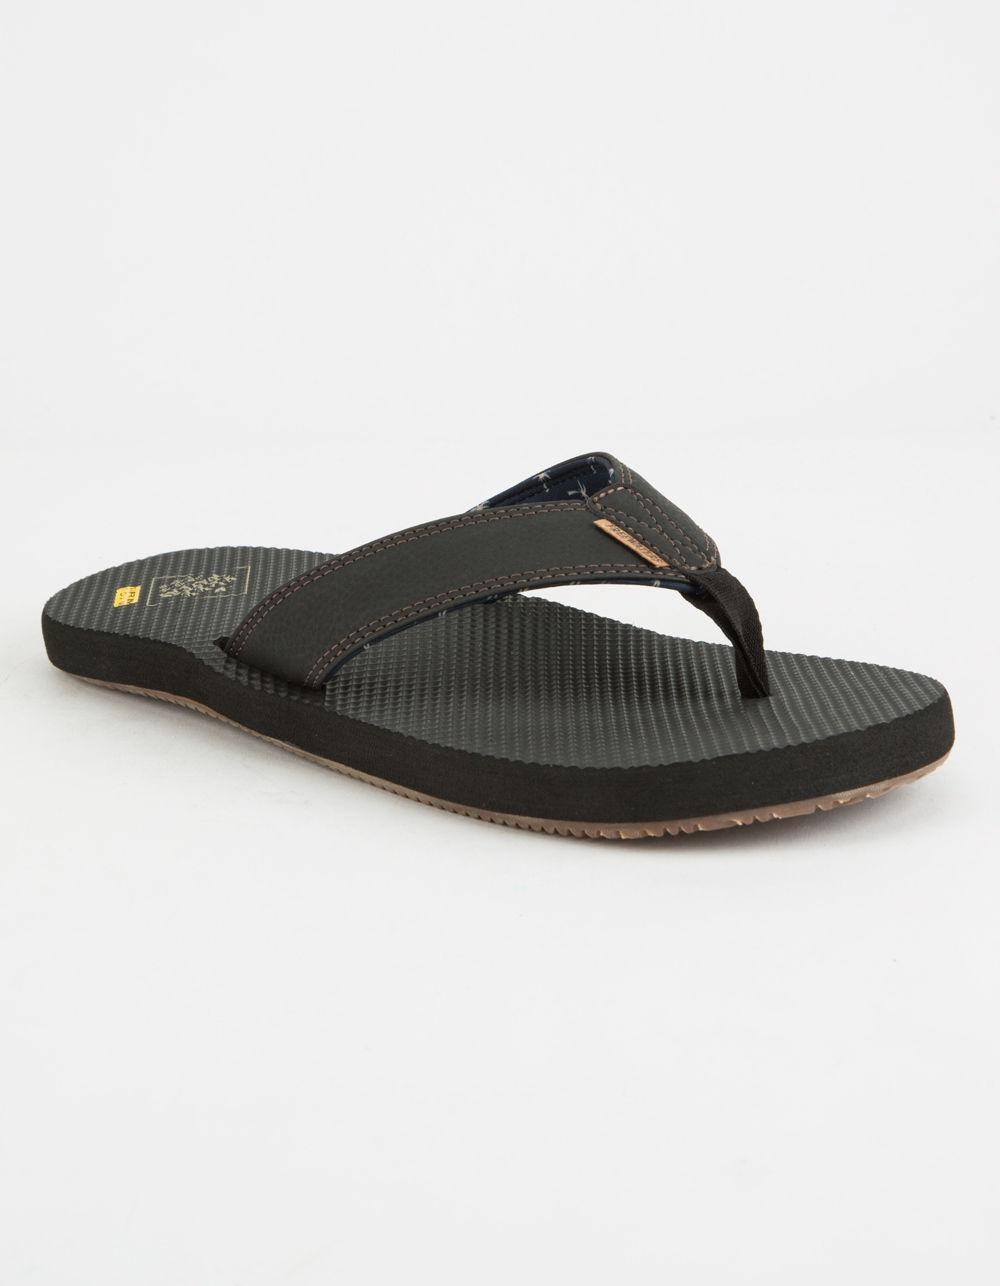 079370e4d43 Lyst - Freewaters Supreem Dude Black Mens Sandals in Black for Men